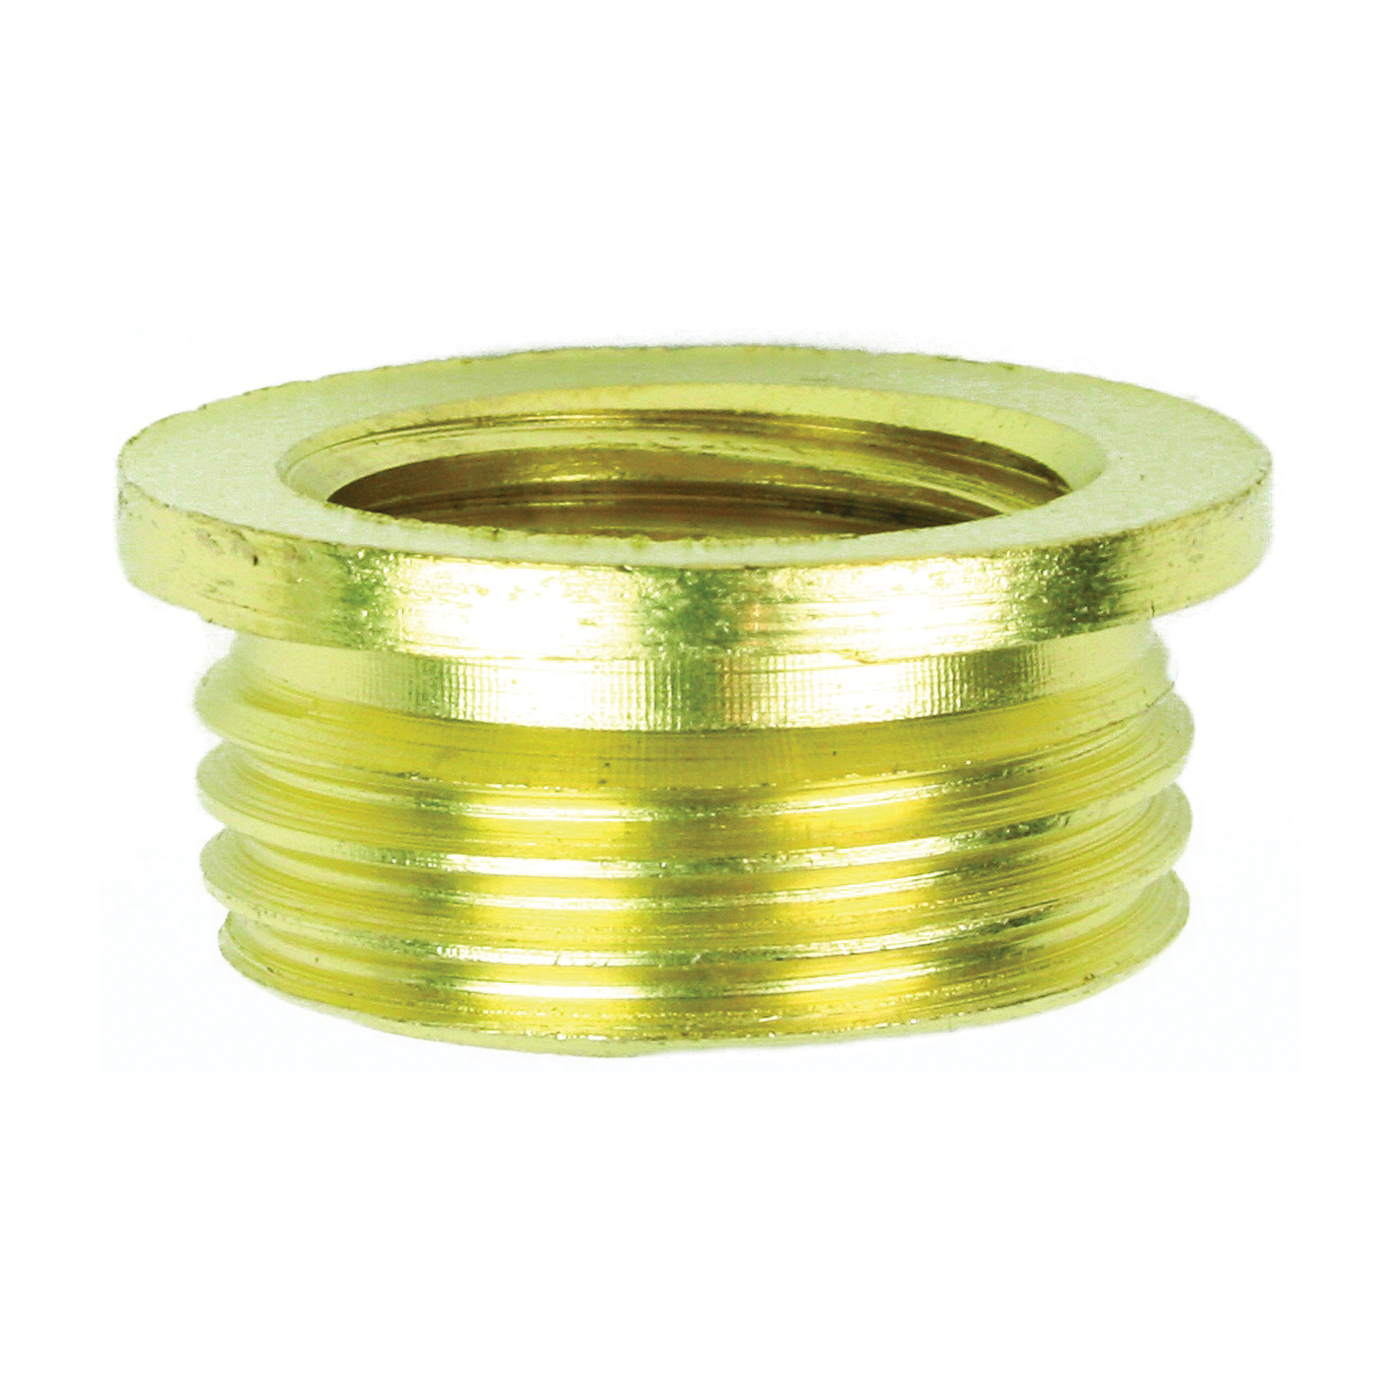 Picture of Jandorf 60145 Lamp Reducer, Brass